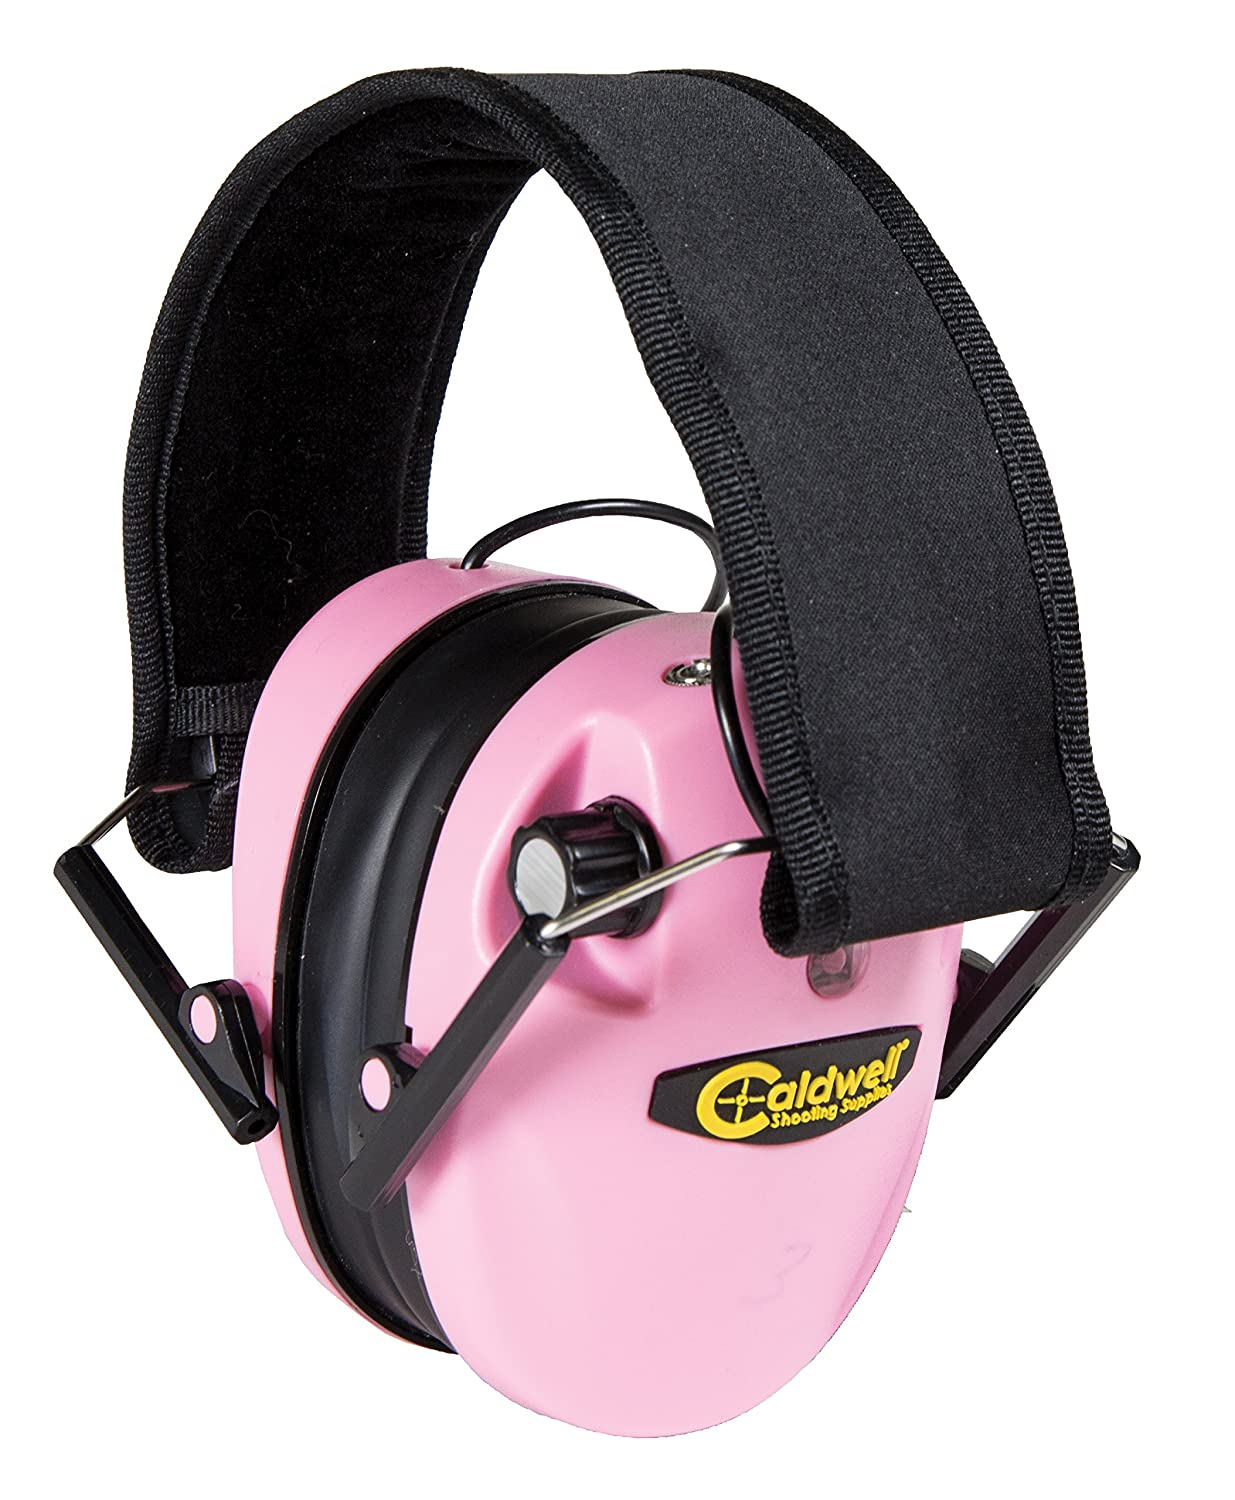 Caldwell E-Max Low Profile Electronic 20-23 NRR Hearing Protection with Sound Amplification and Adjustable Earmuffs for Shooting, Hunting and Range